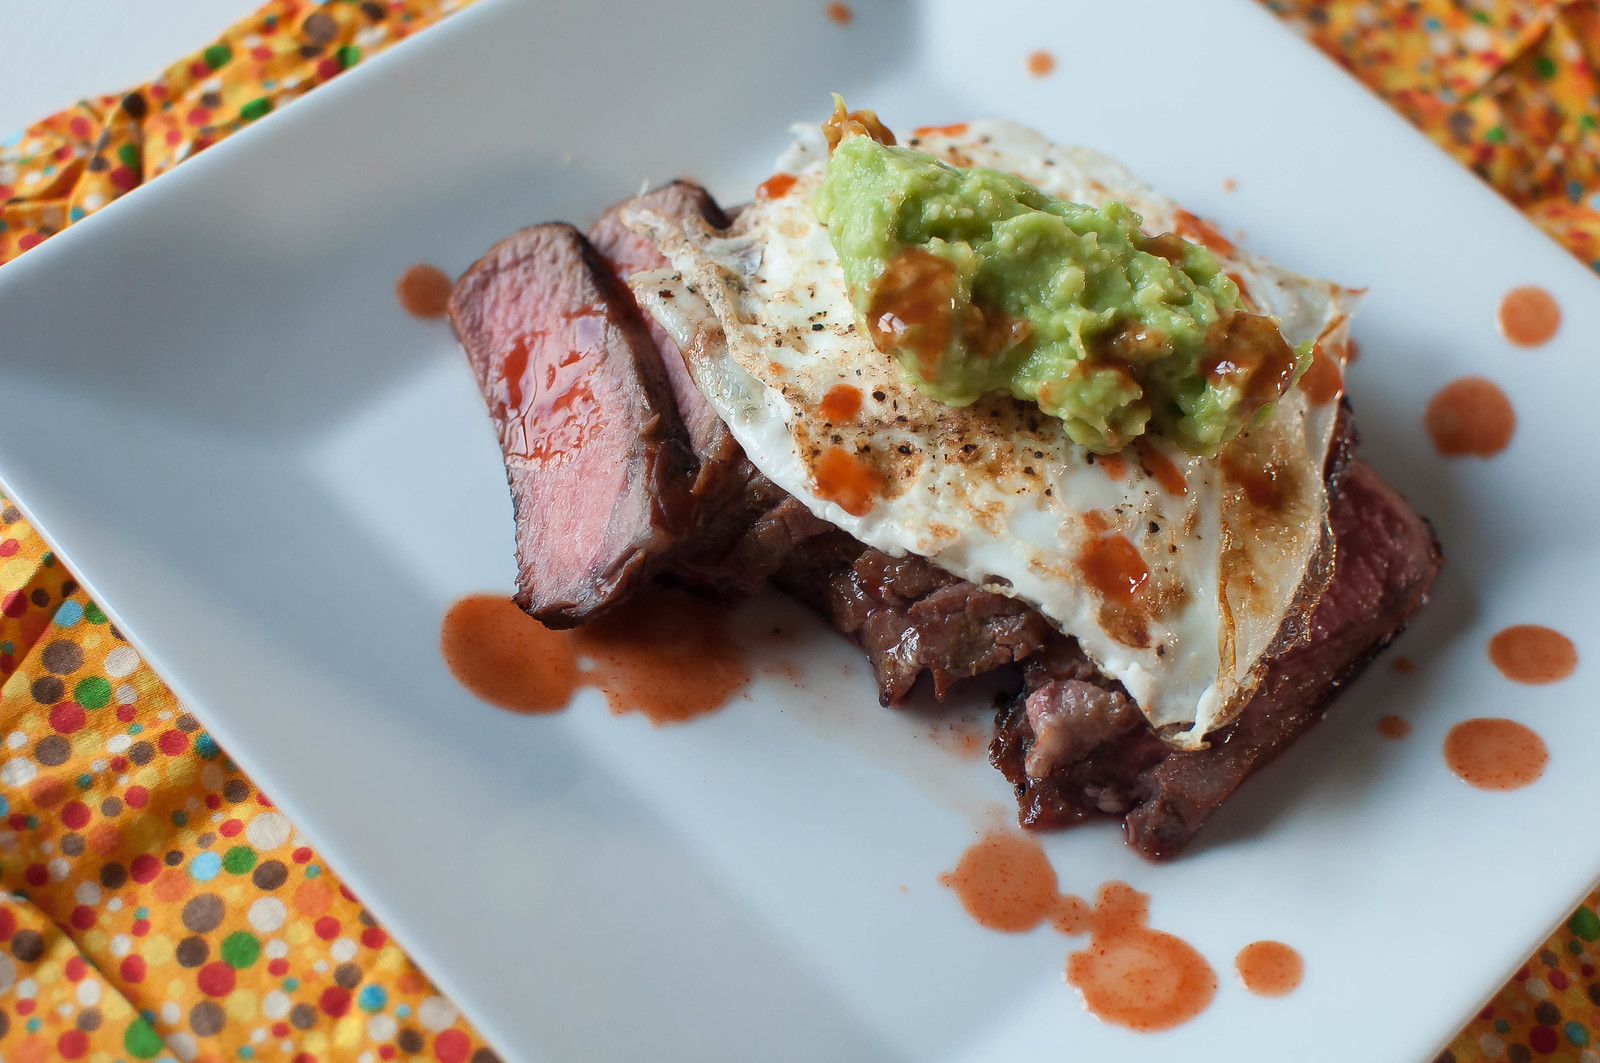 Steak, Eggs and Guacamole 7